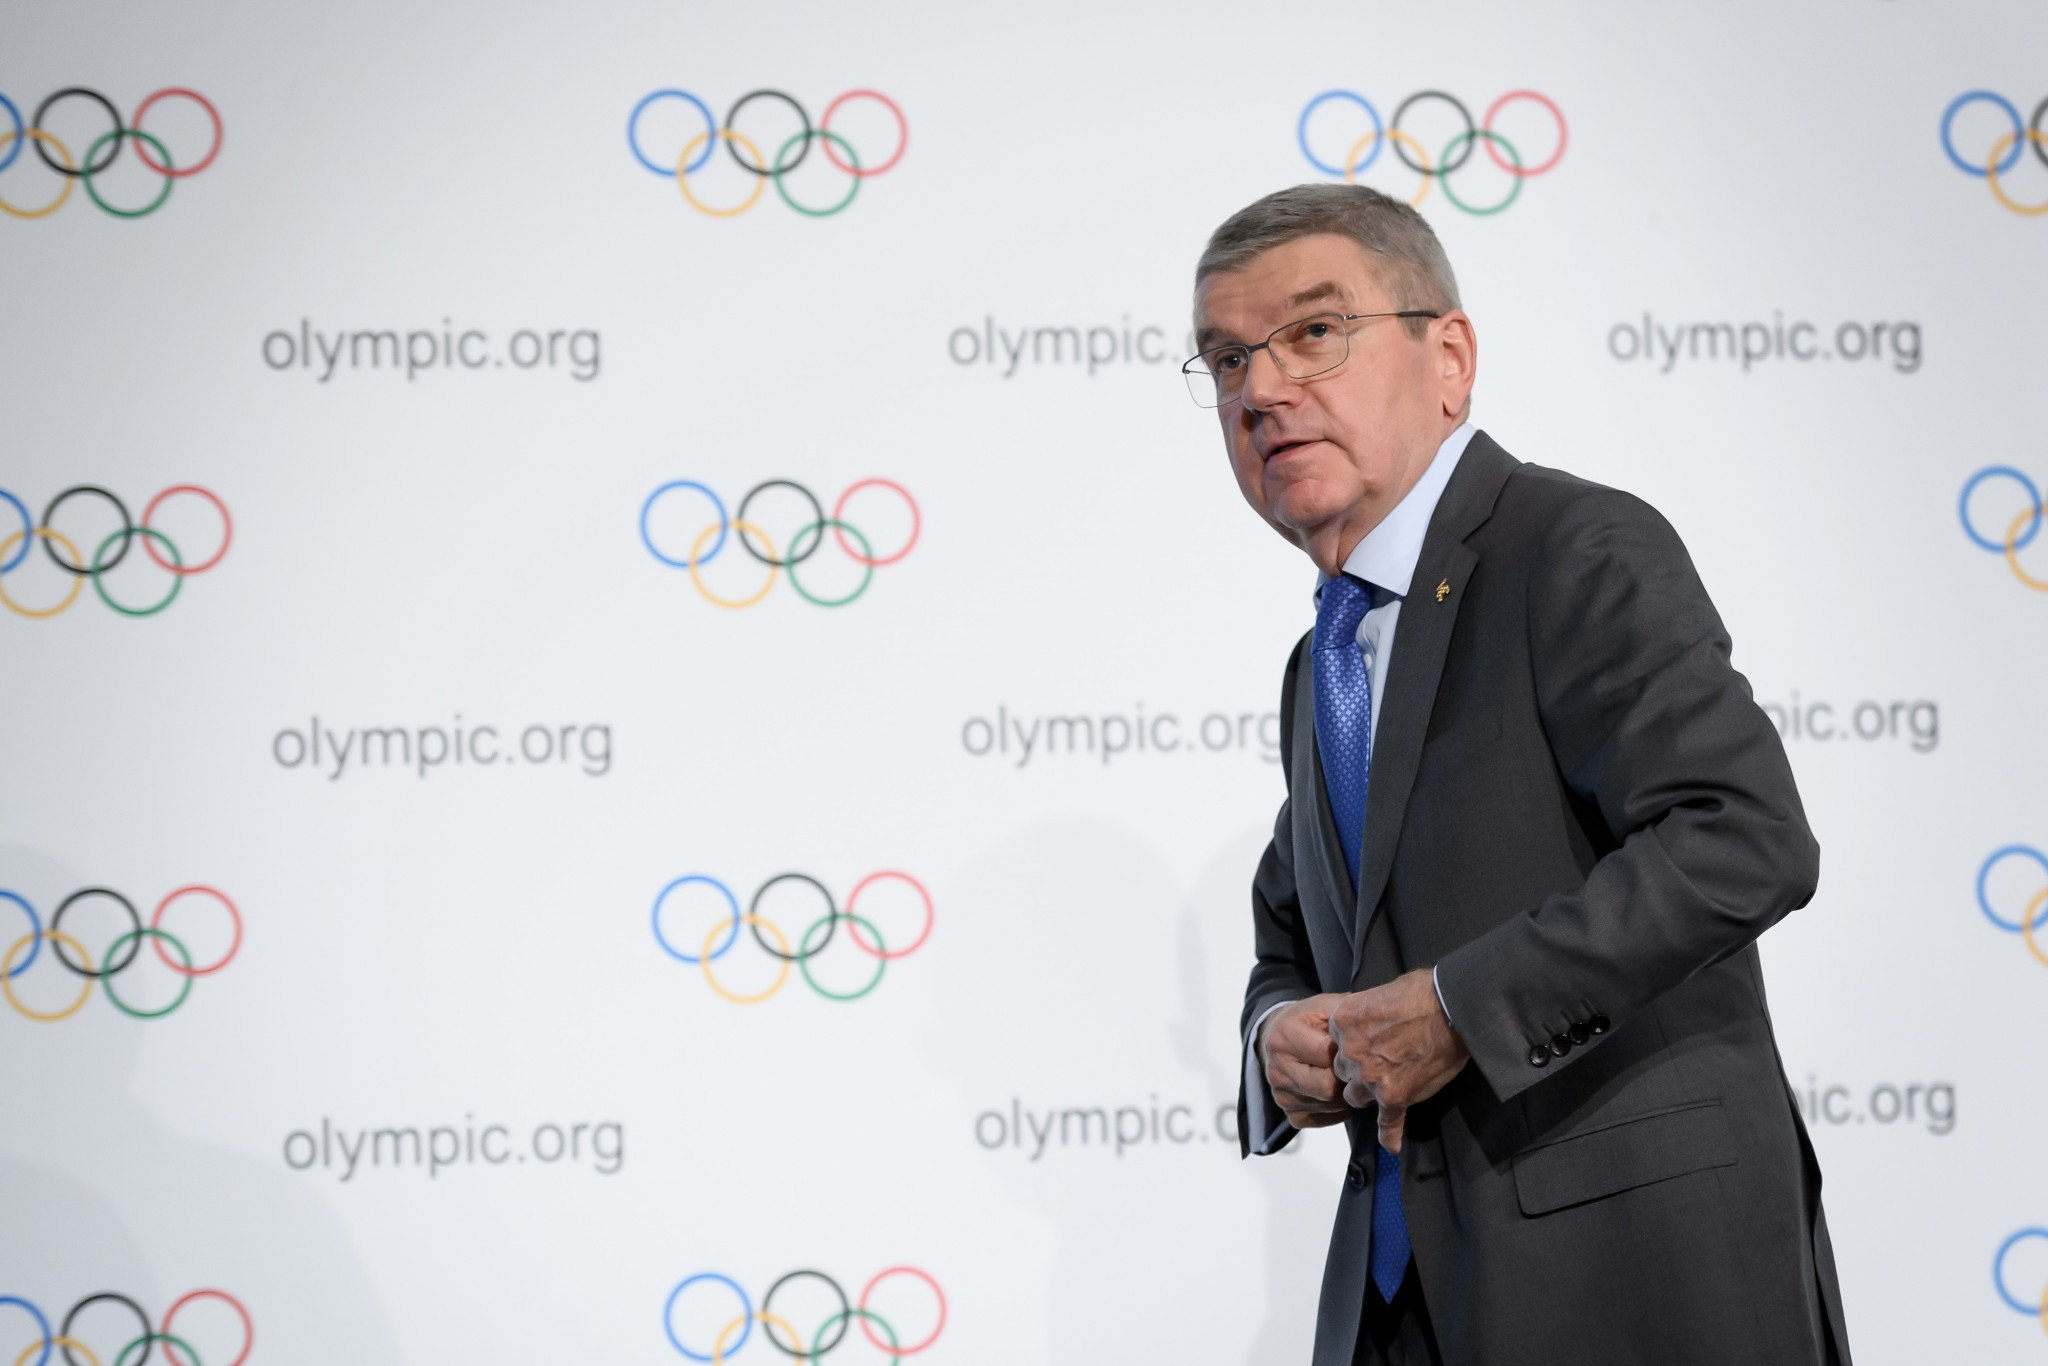 IOC President Thomas Bach has previously seemed confident about a German bid for the Olympic and Paralympic Games ©Getty Images